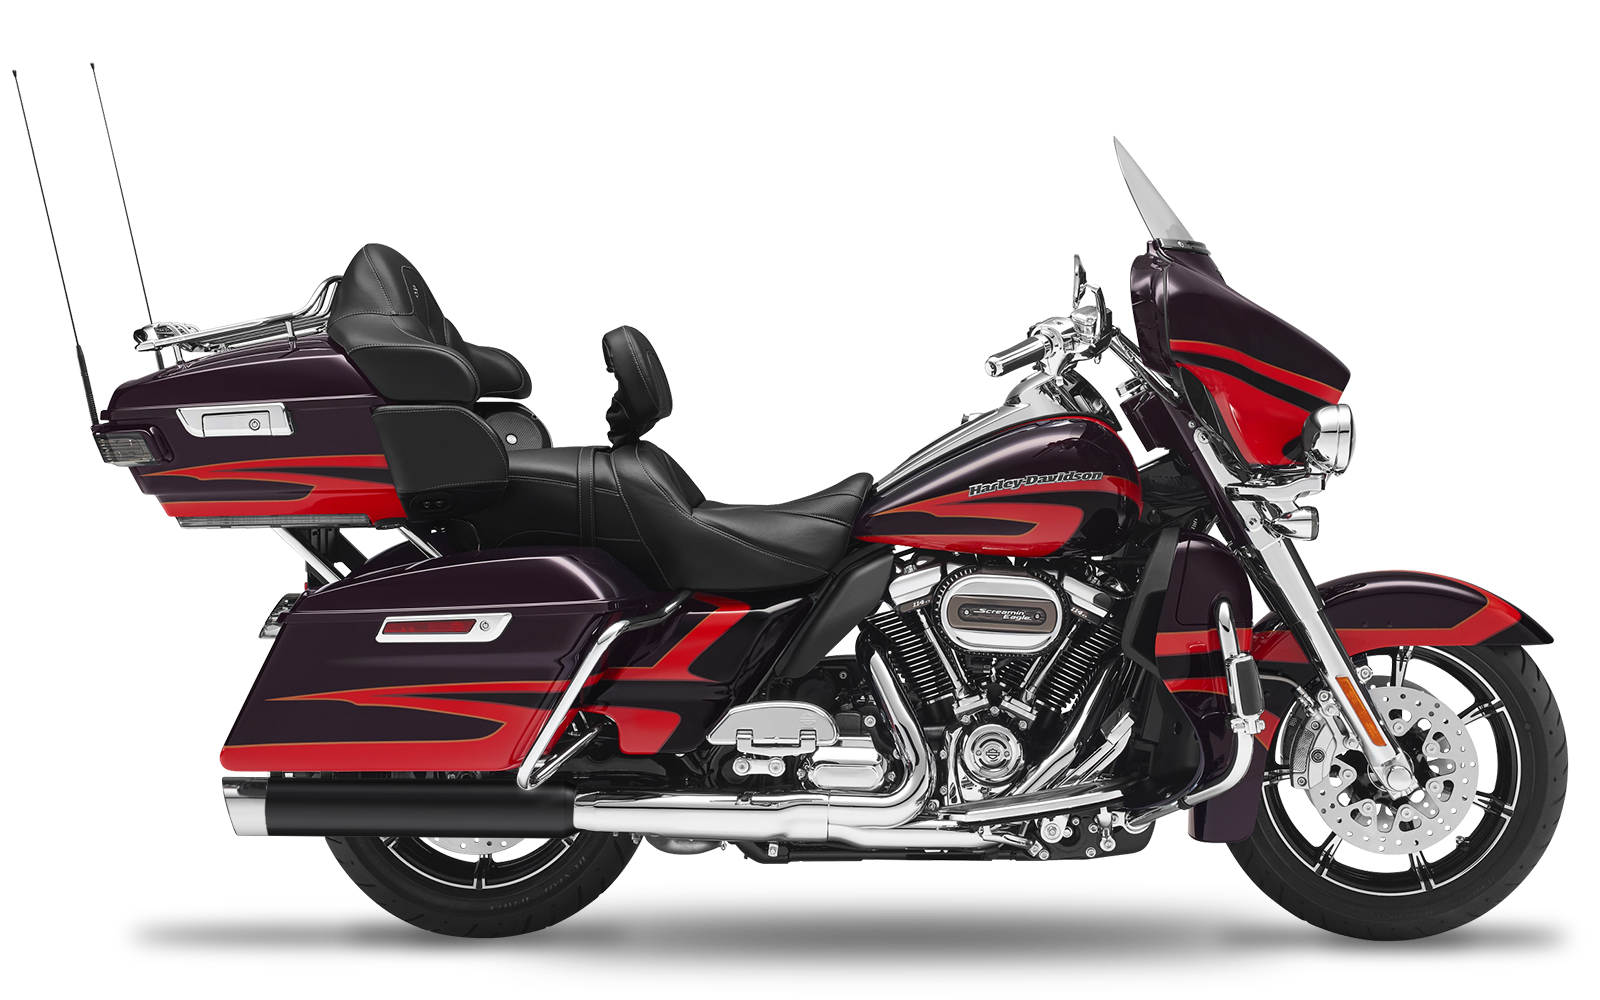 Touring - Road Glide Limited - ME114 - 2021 - Slipons